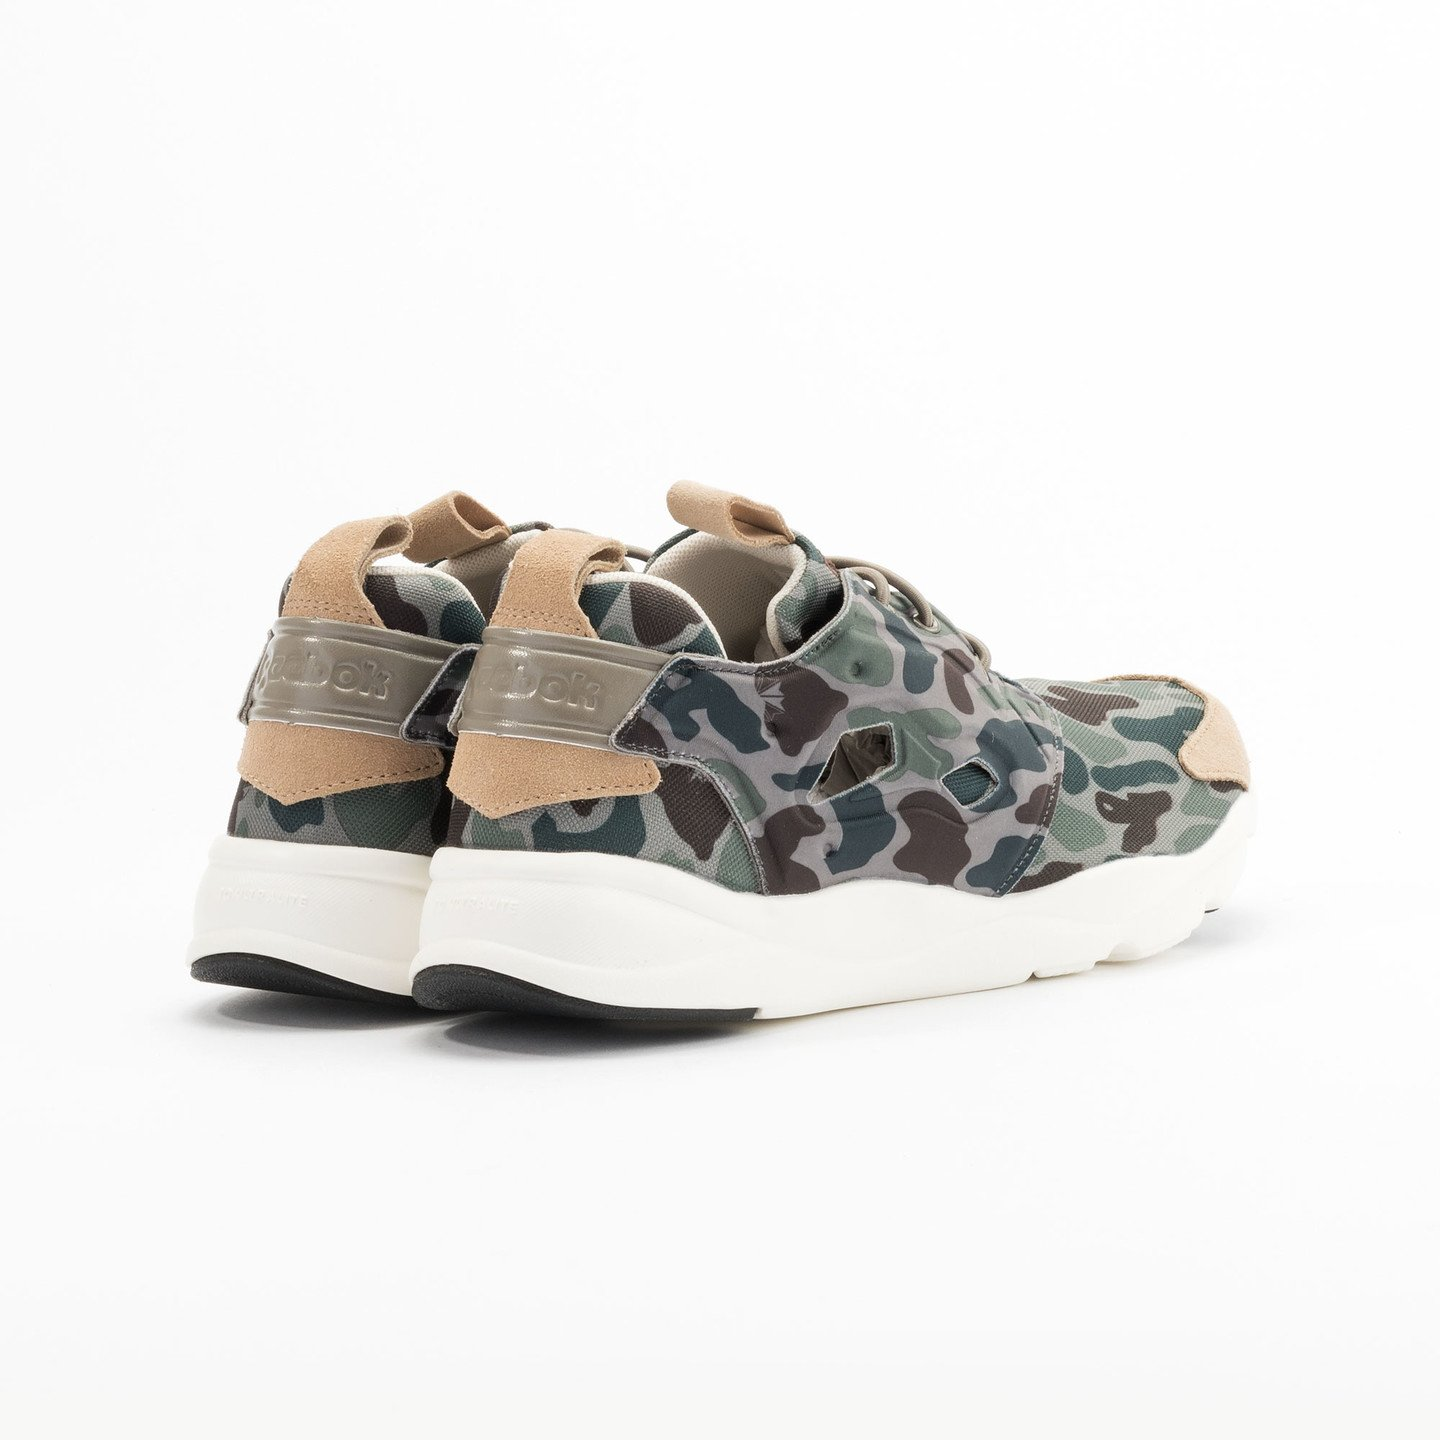 Reebok Furylite Camo Cement / Silvery Green / Sage V67089-42.5